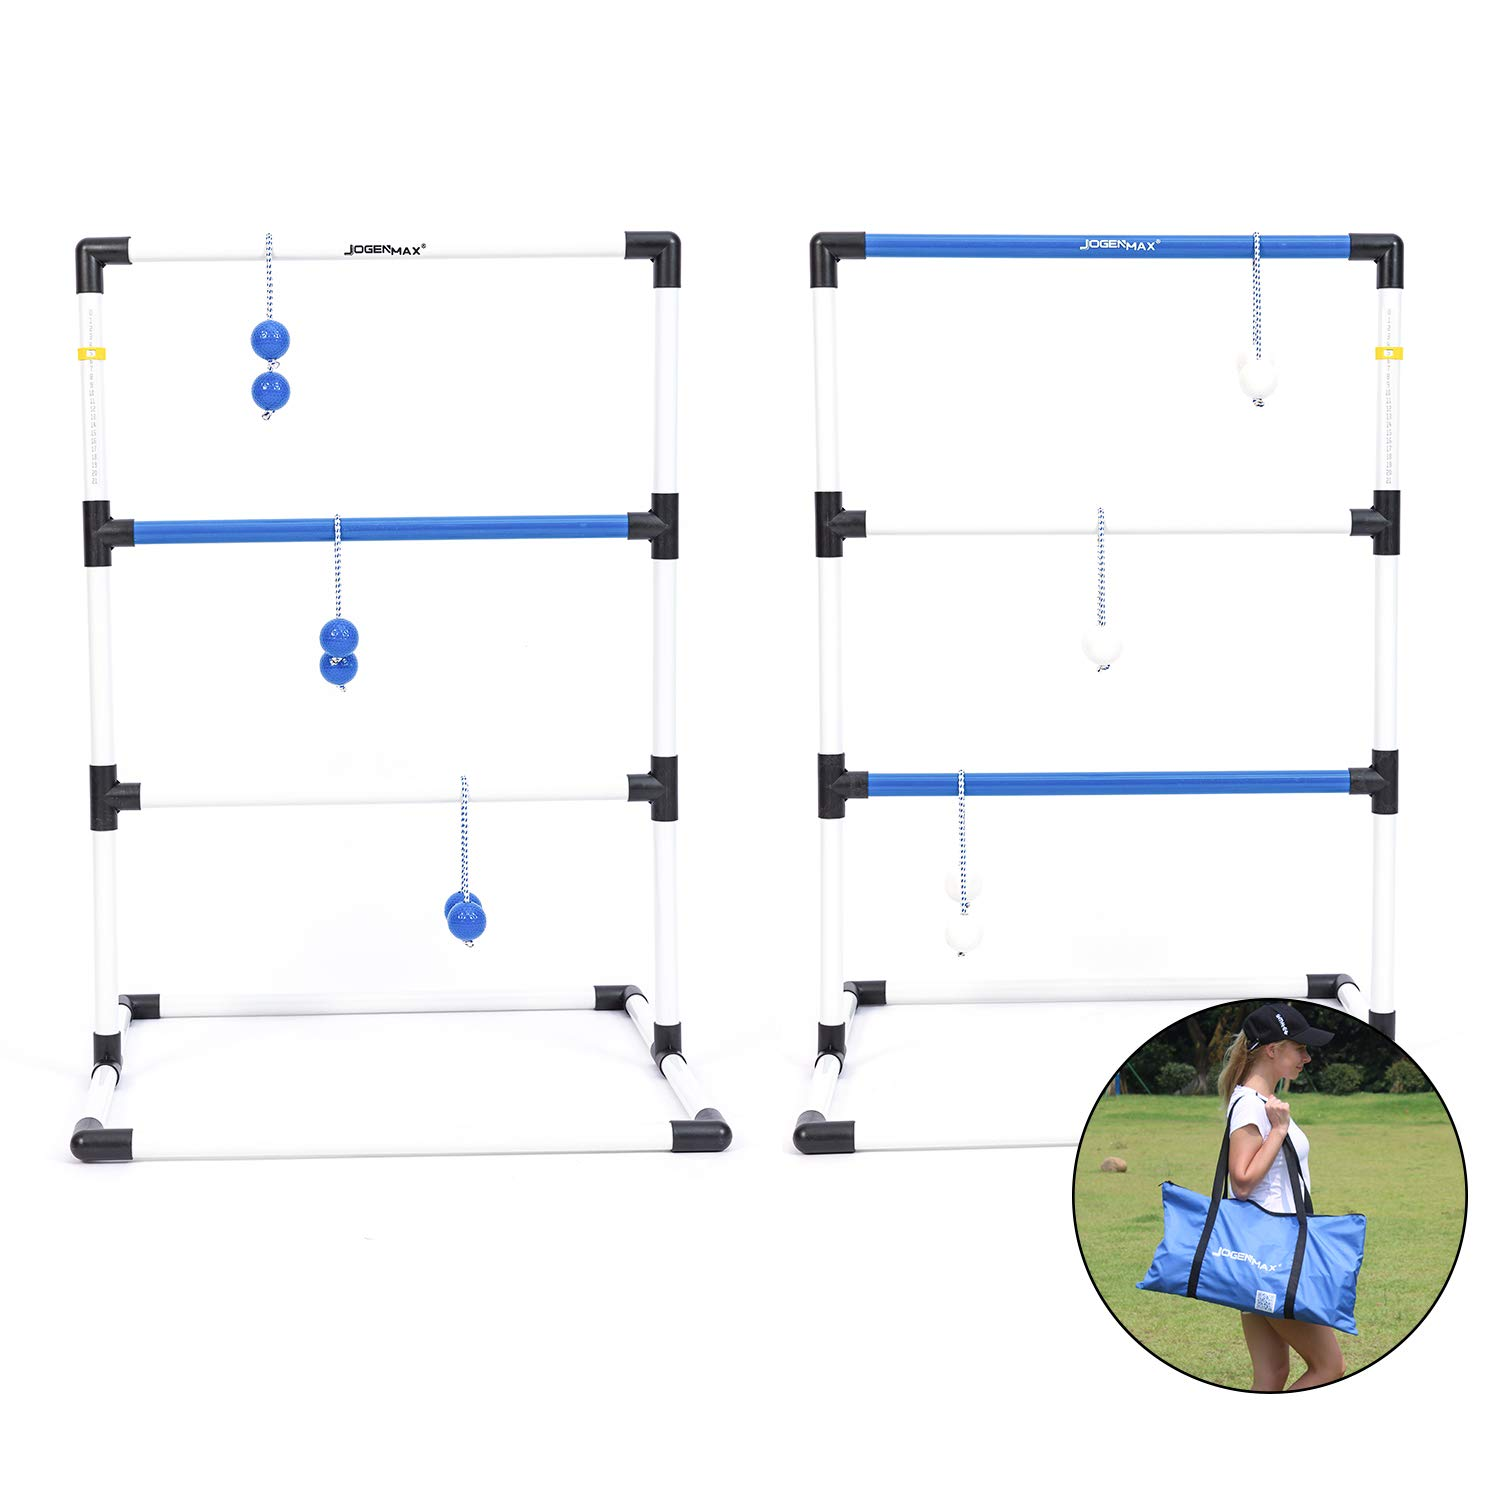 JOGENMAX Ladder Toss Game Set Indoor/Outdoor Lawn Game with 6 Bolo Balls, Portable Carrying Case and Score Trackers, 38 x 24Inch